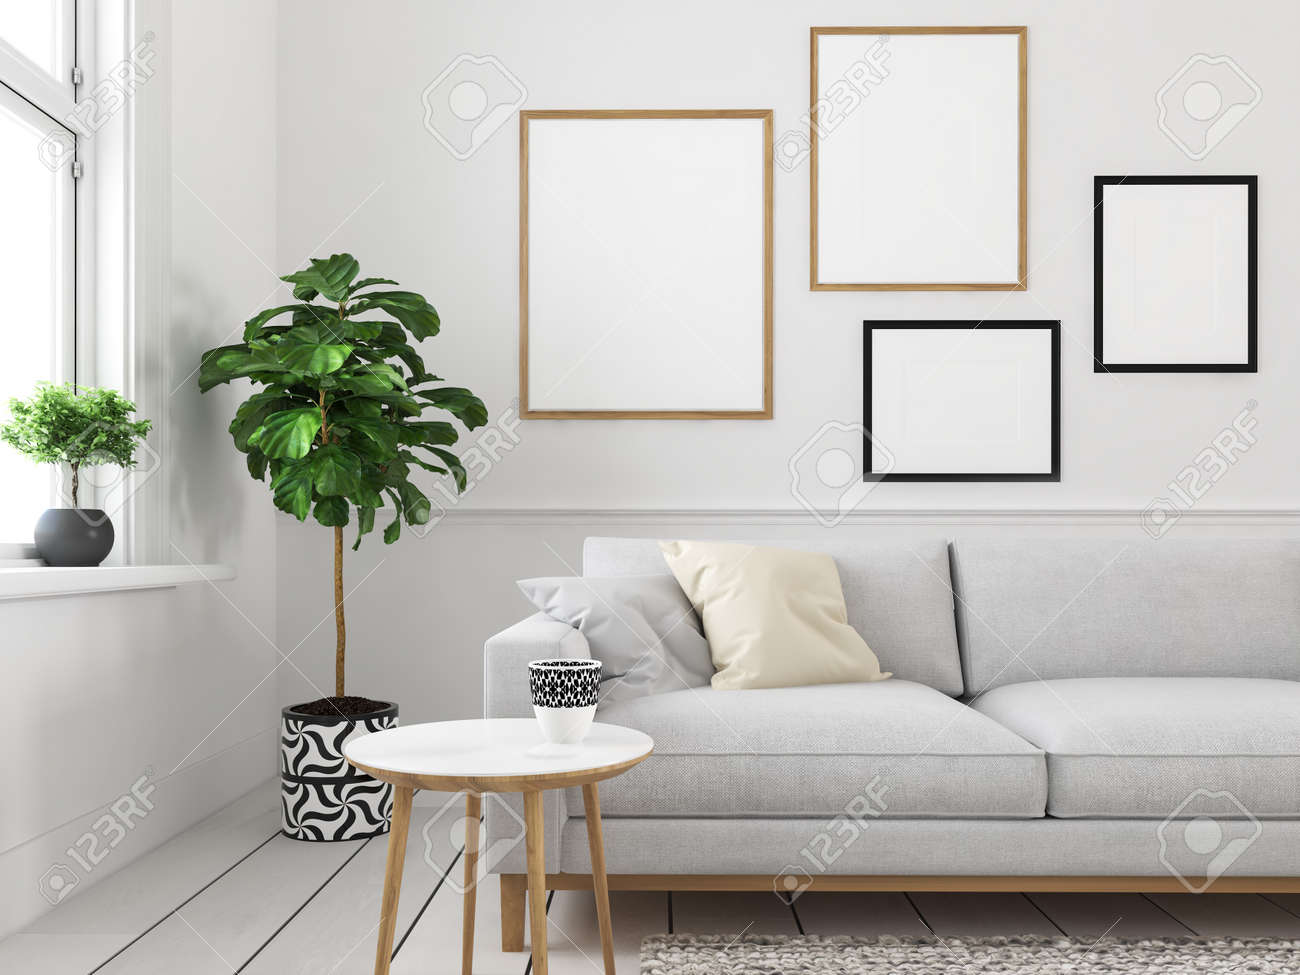 Living Room With Empty Picture Frames 3d Rendering Stock Photo Picture And Royalty Free Image Image 102632425